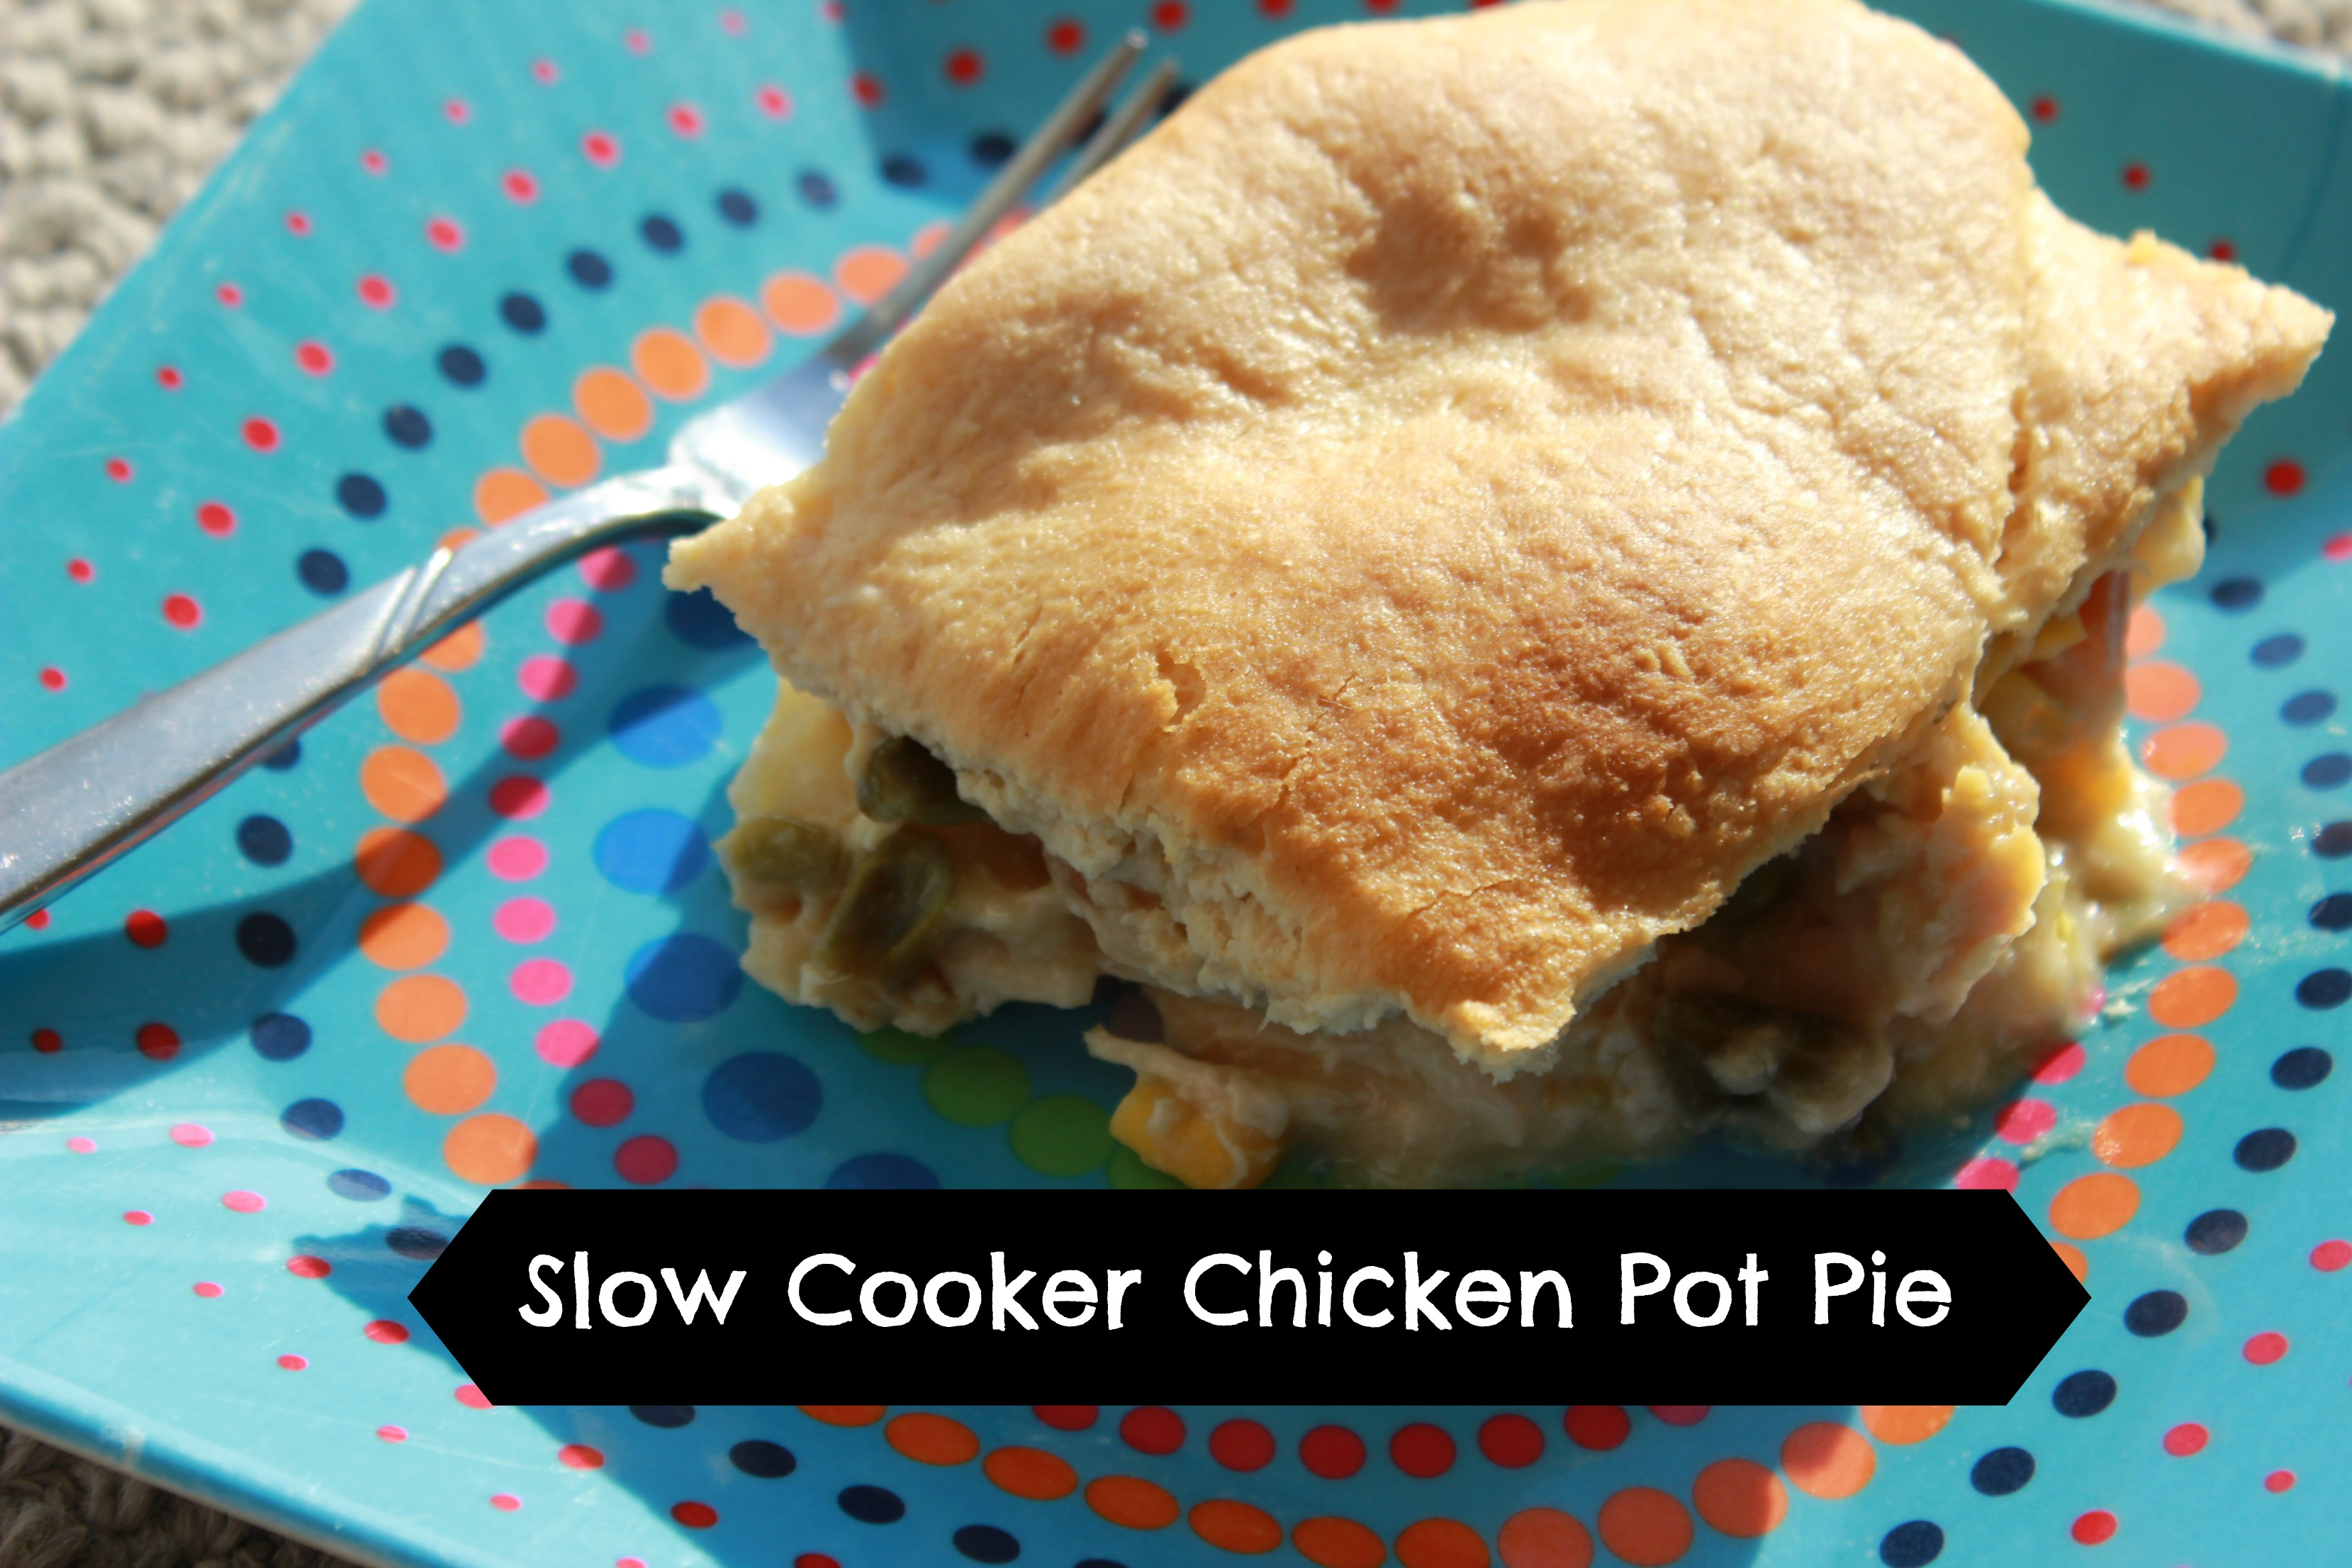 Slow cooker chicken pot pie, kid approved and a quick meal for families.